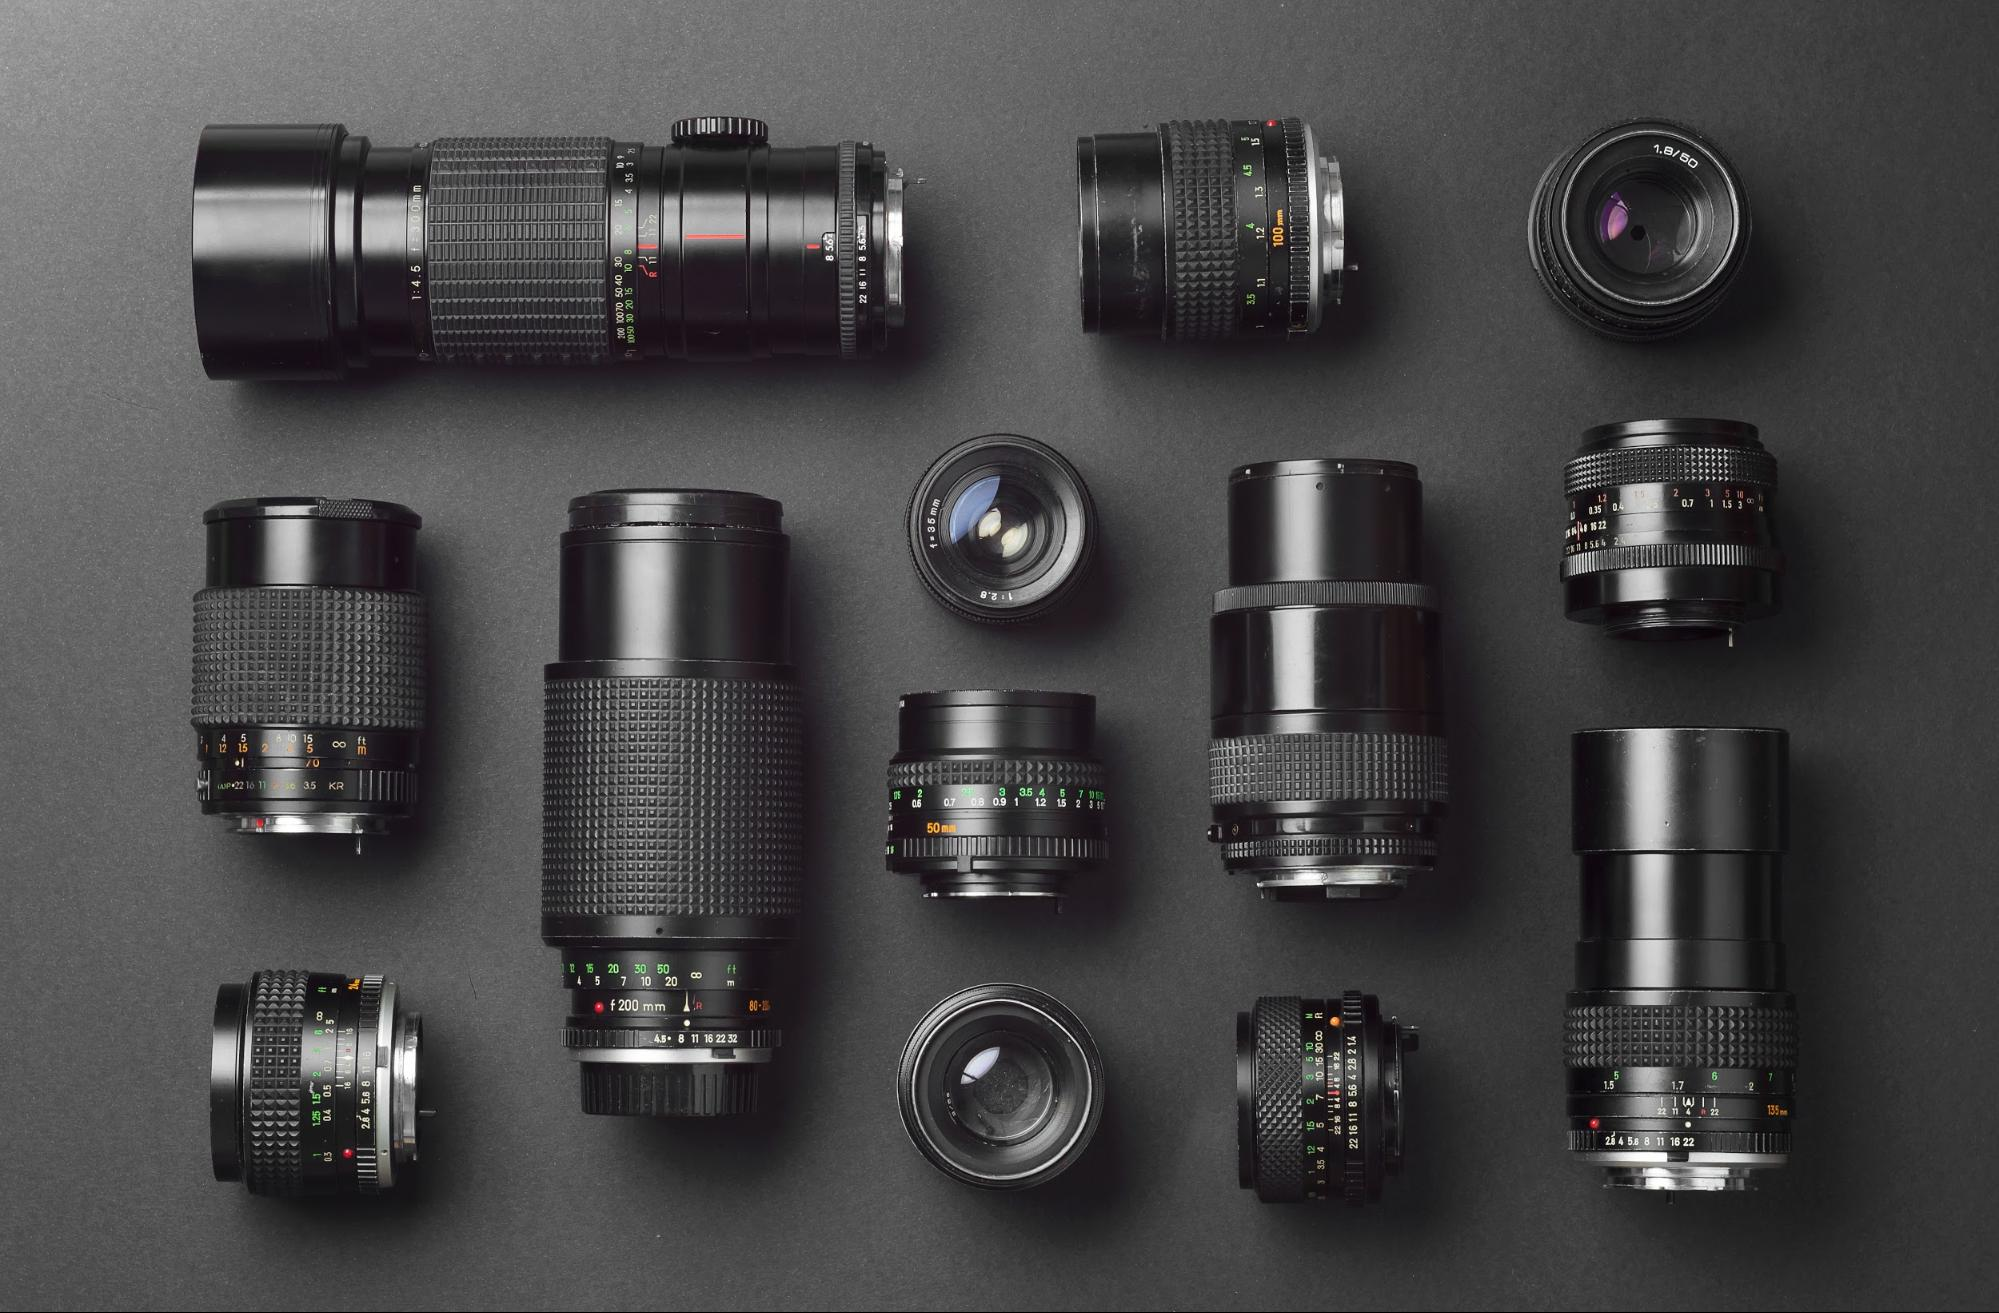 Photography 101: Understanding Camera Lenses Basics - 2019